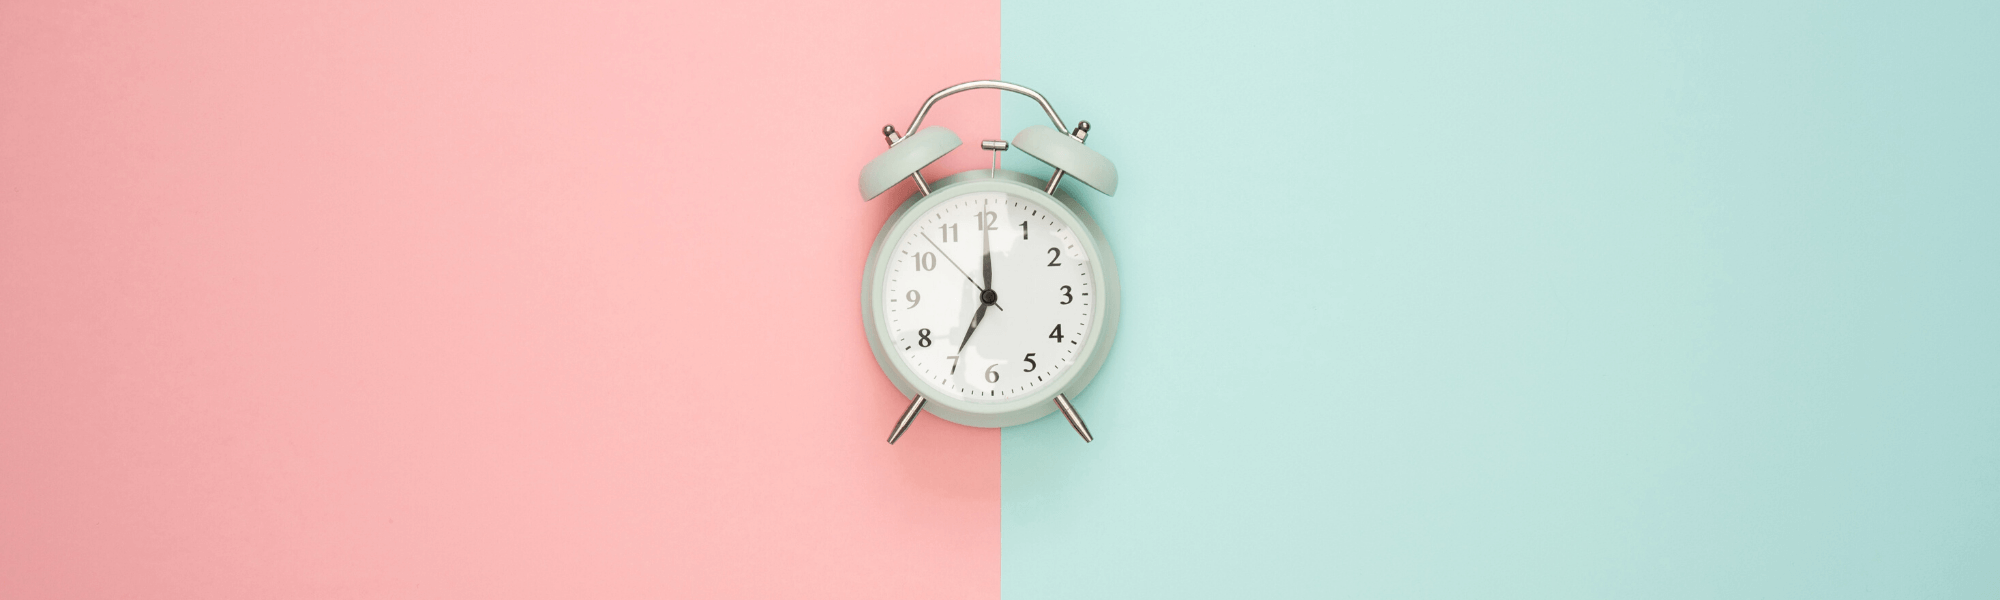 6 WAYS TO MAKE INTERMITTENT FASTING WORK FOR YOU